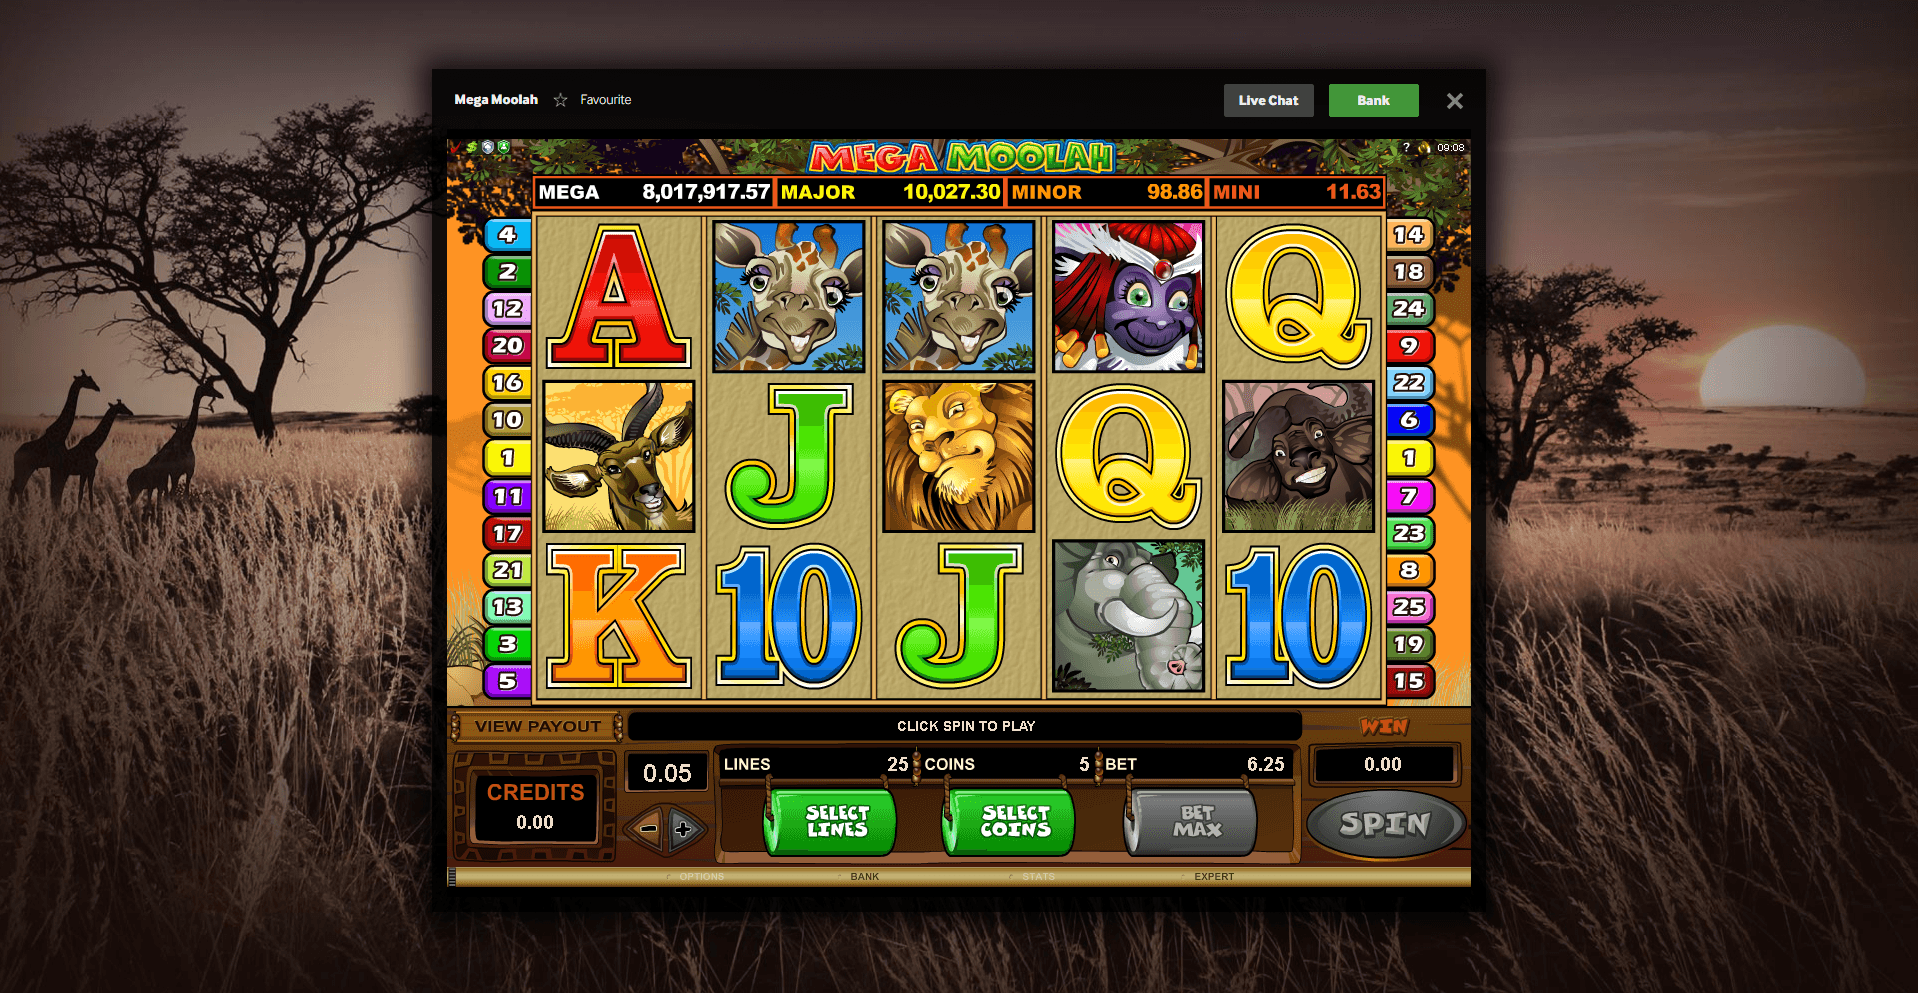 Microgaming announces another millionaire made on its Mega Moolah